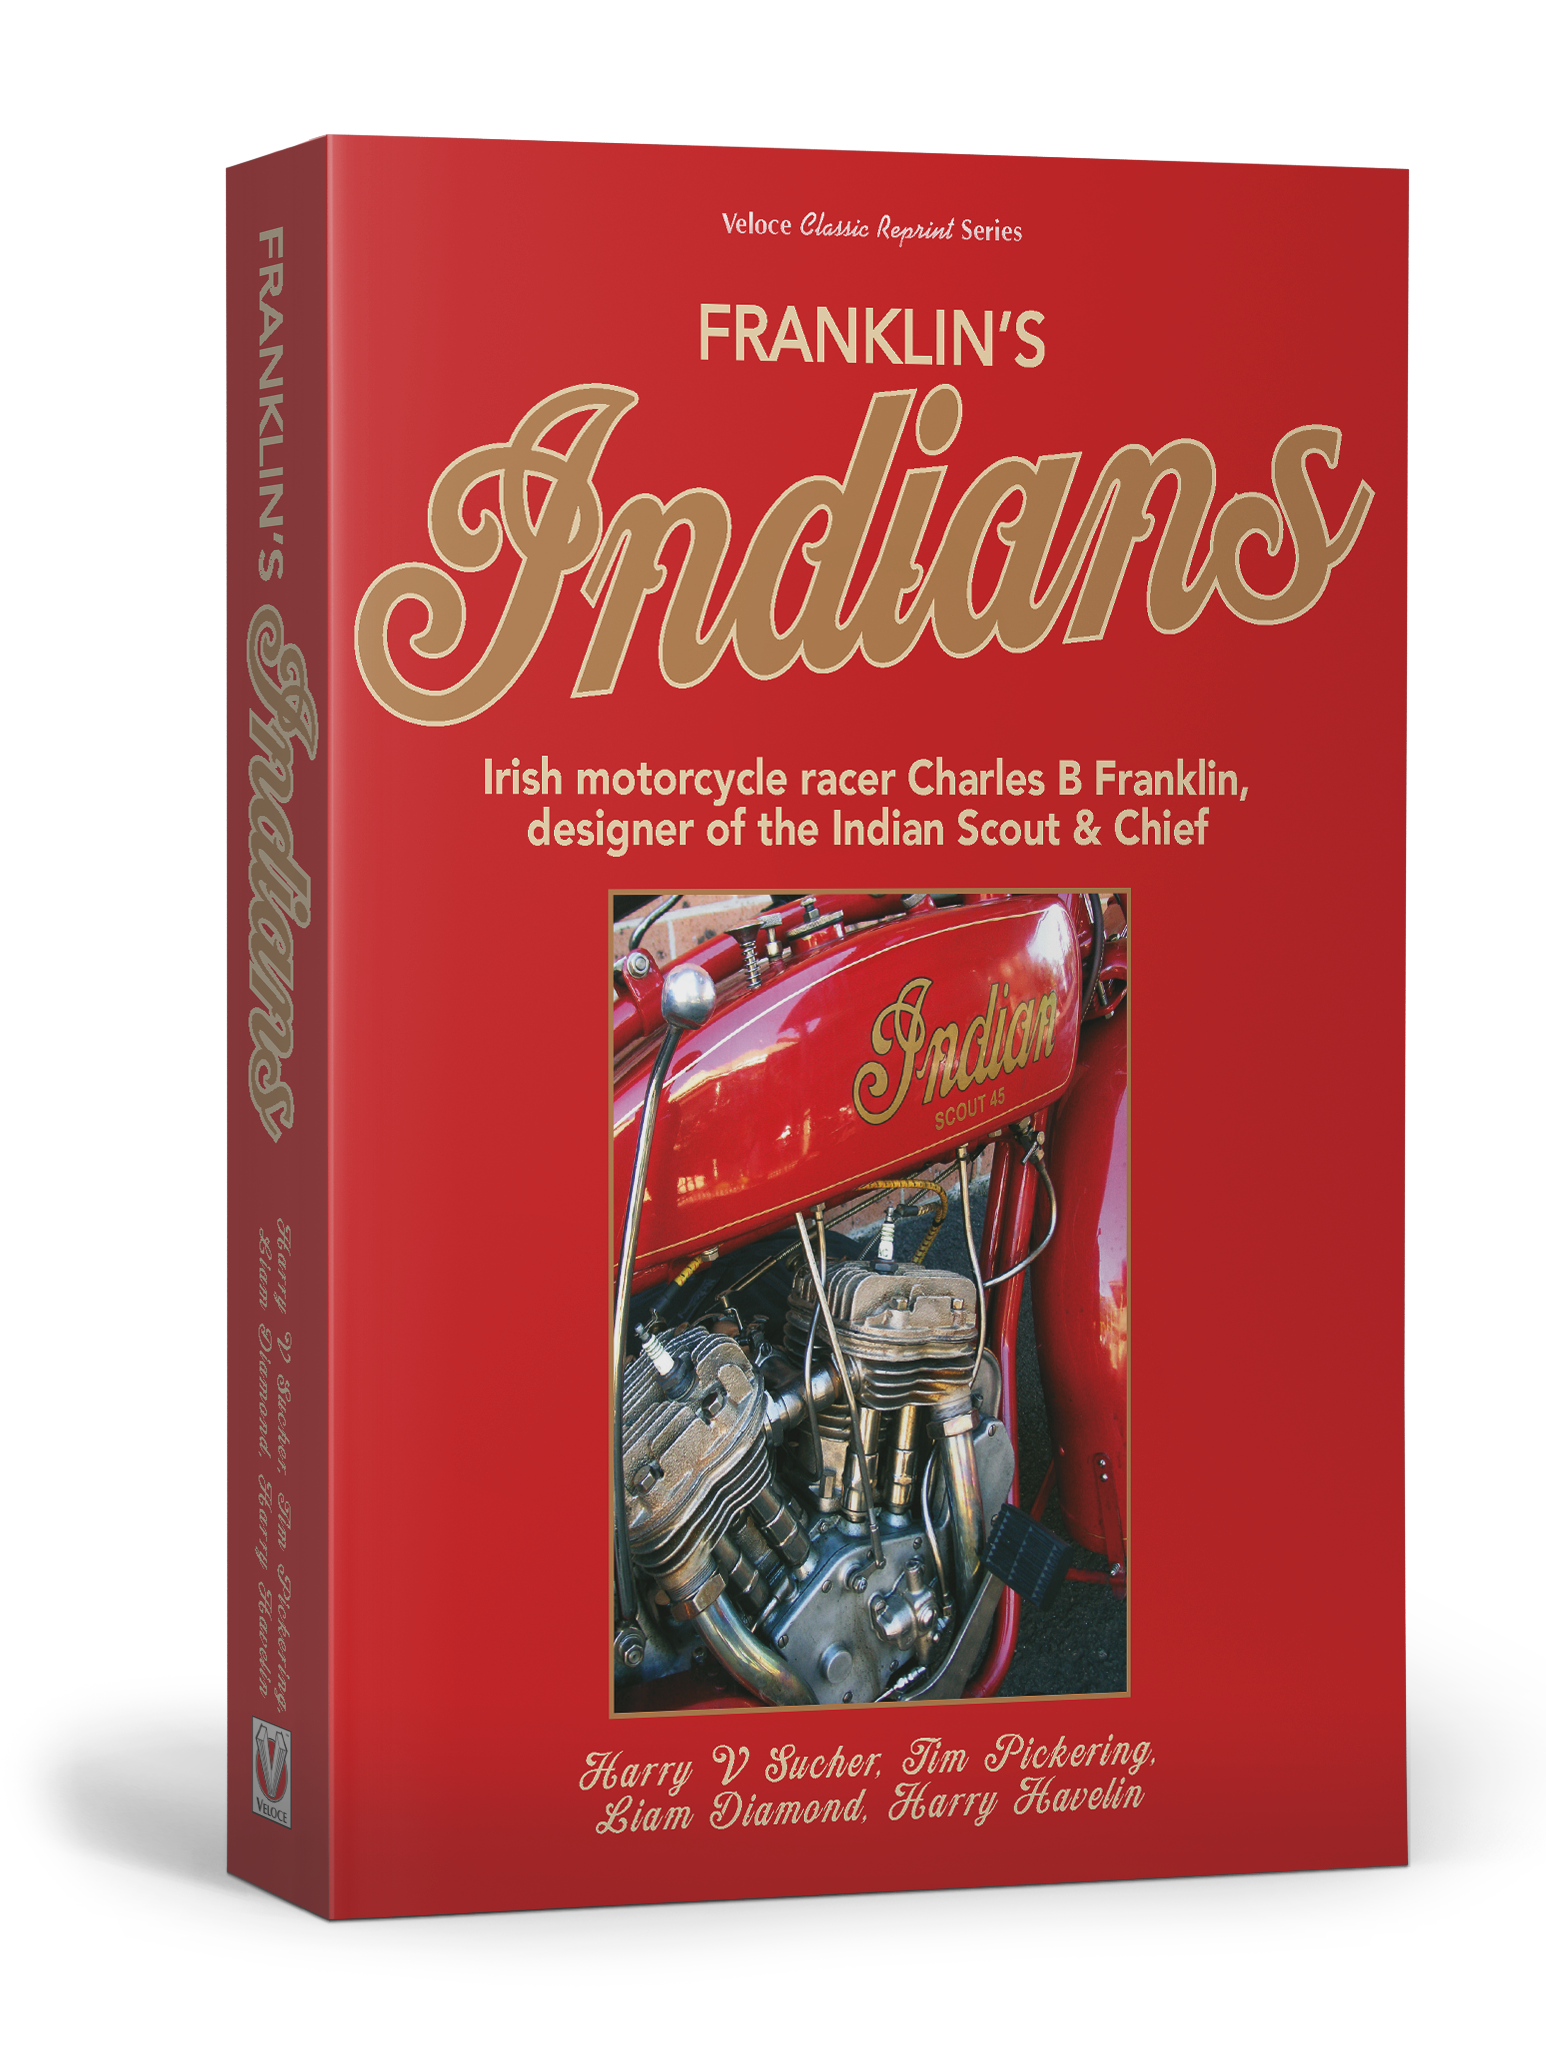 Franklin's Indians by Harry Sucher